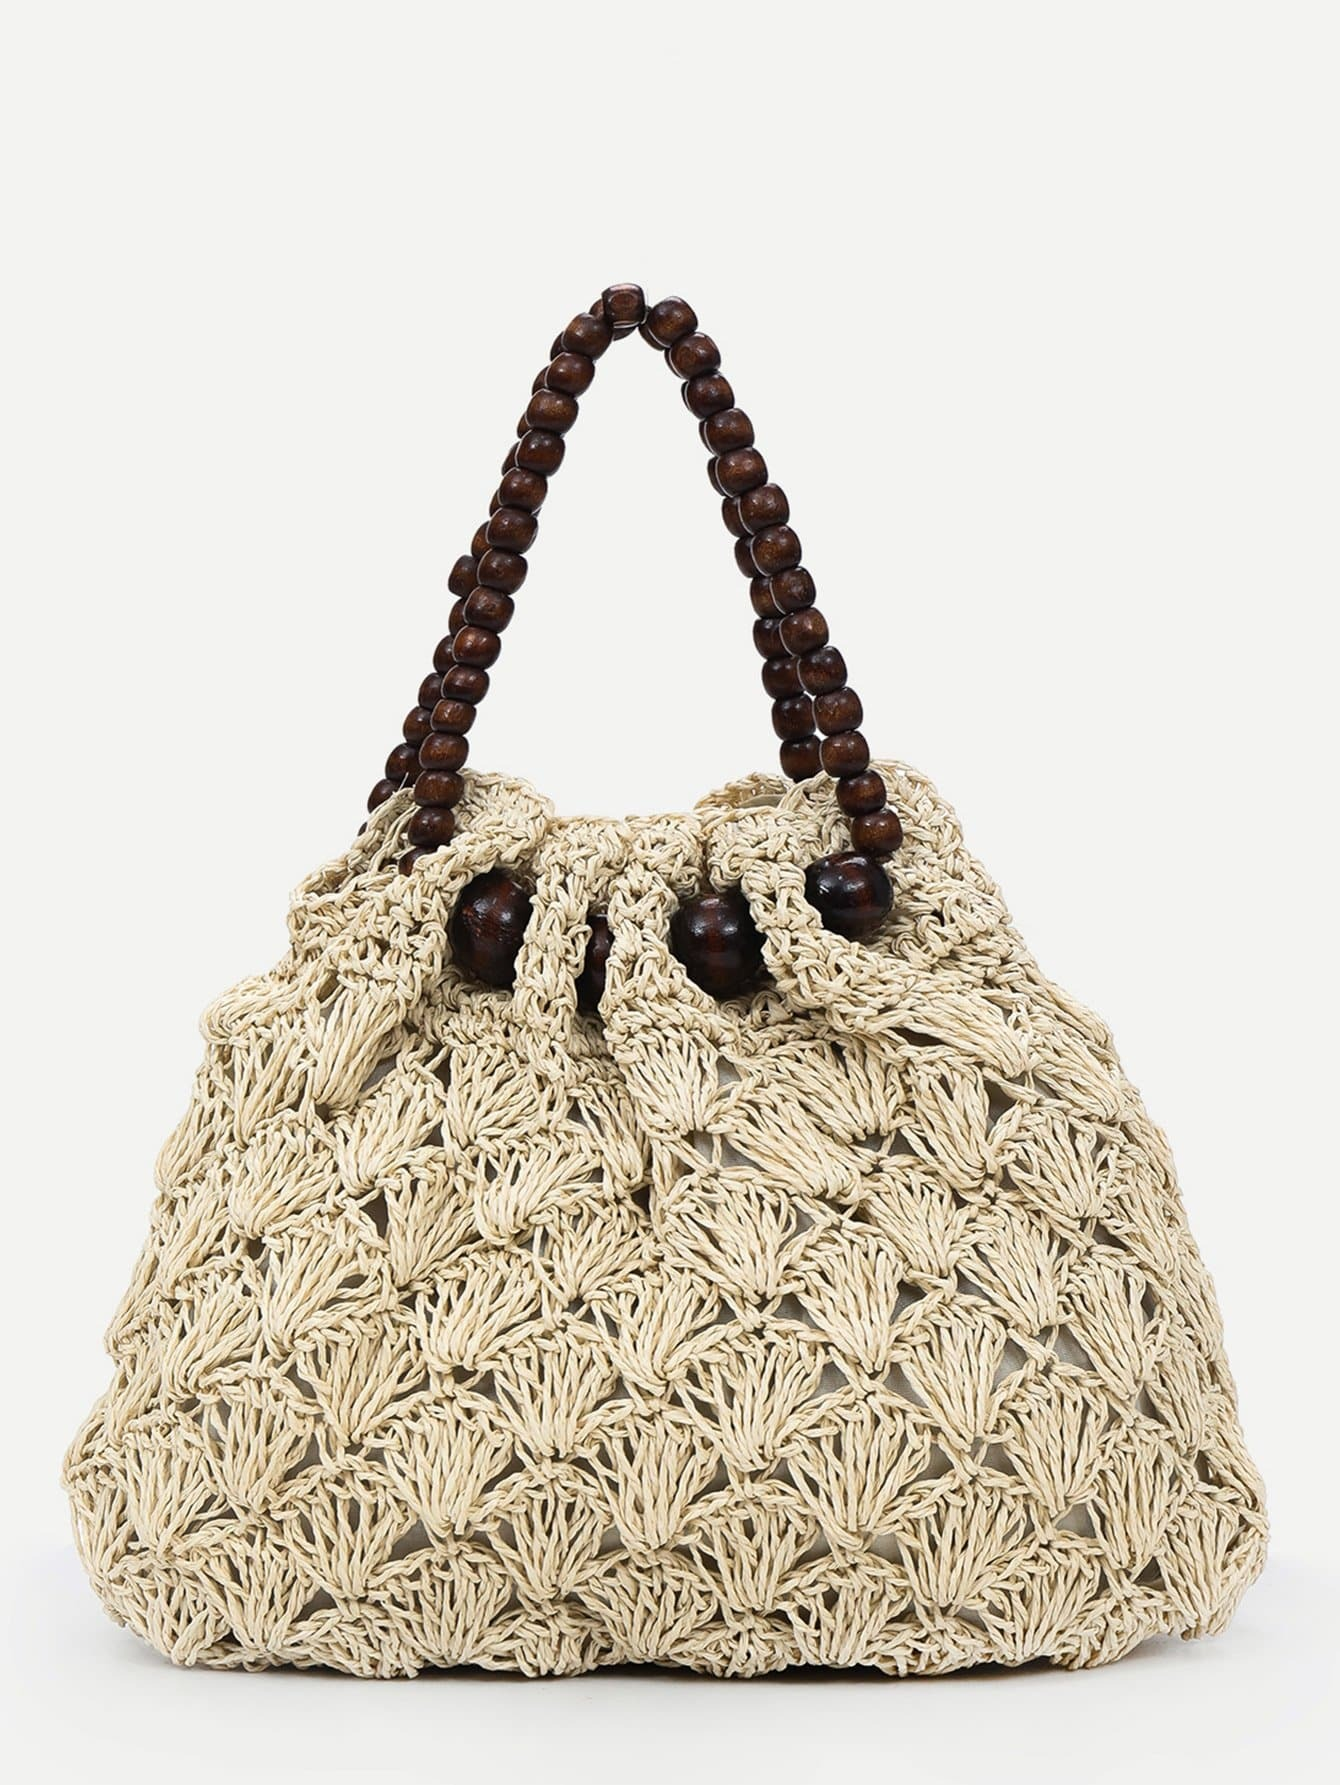 Woven Tote Bag With Wood Beads Handle